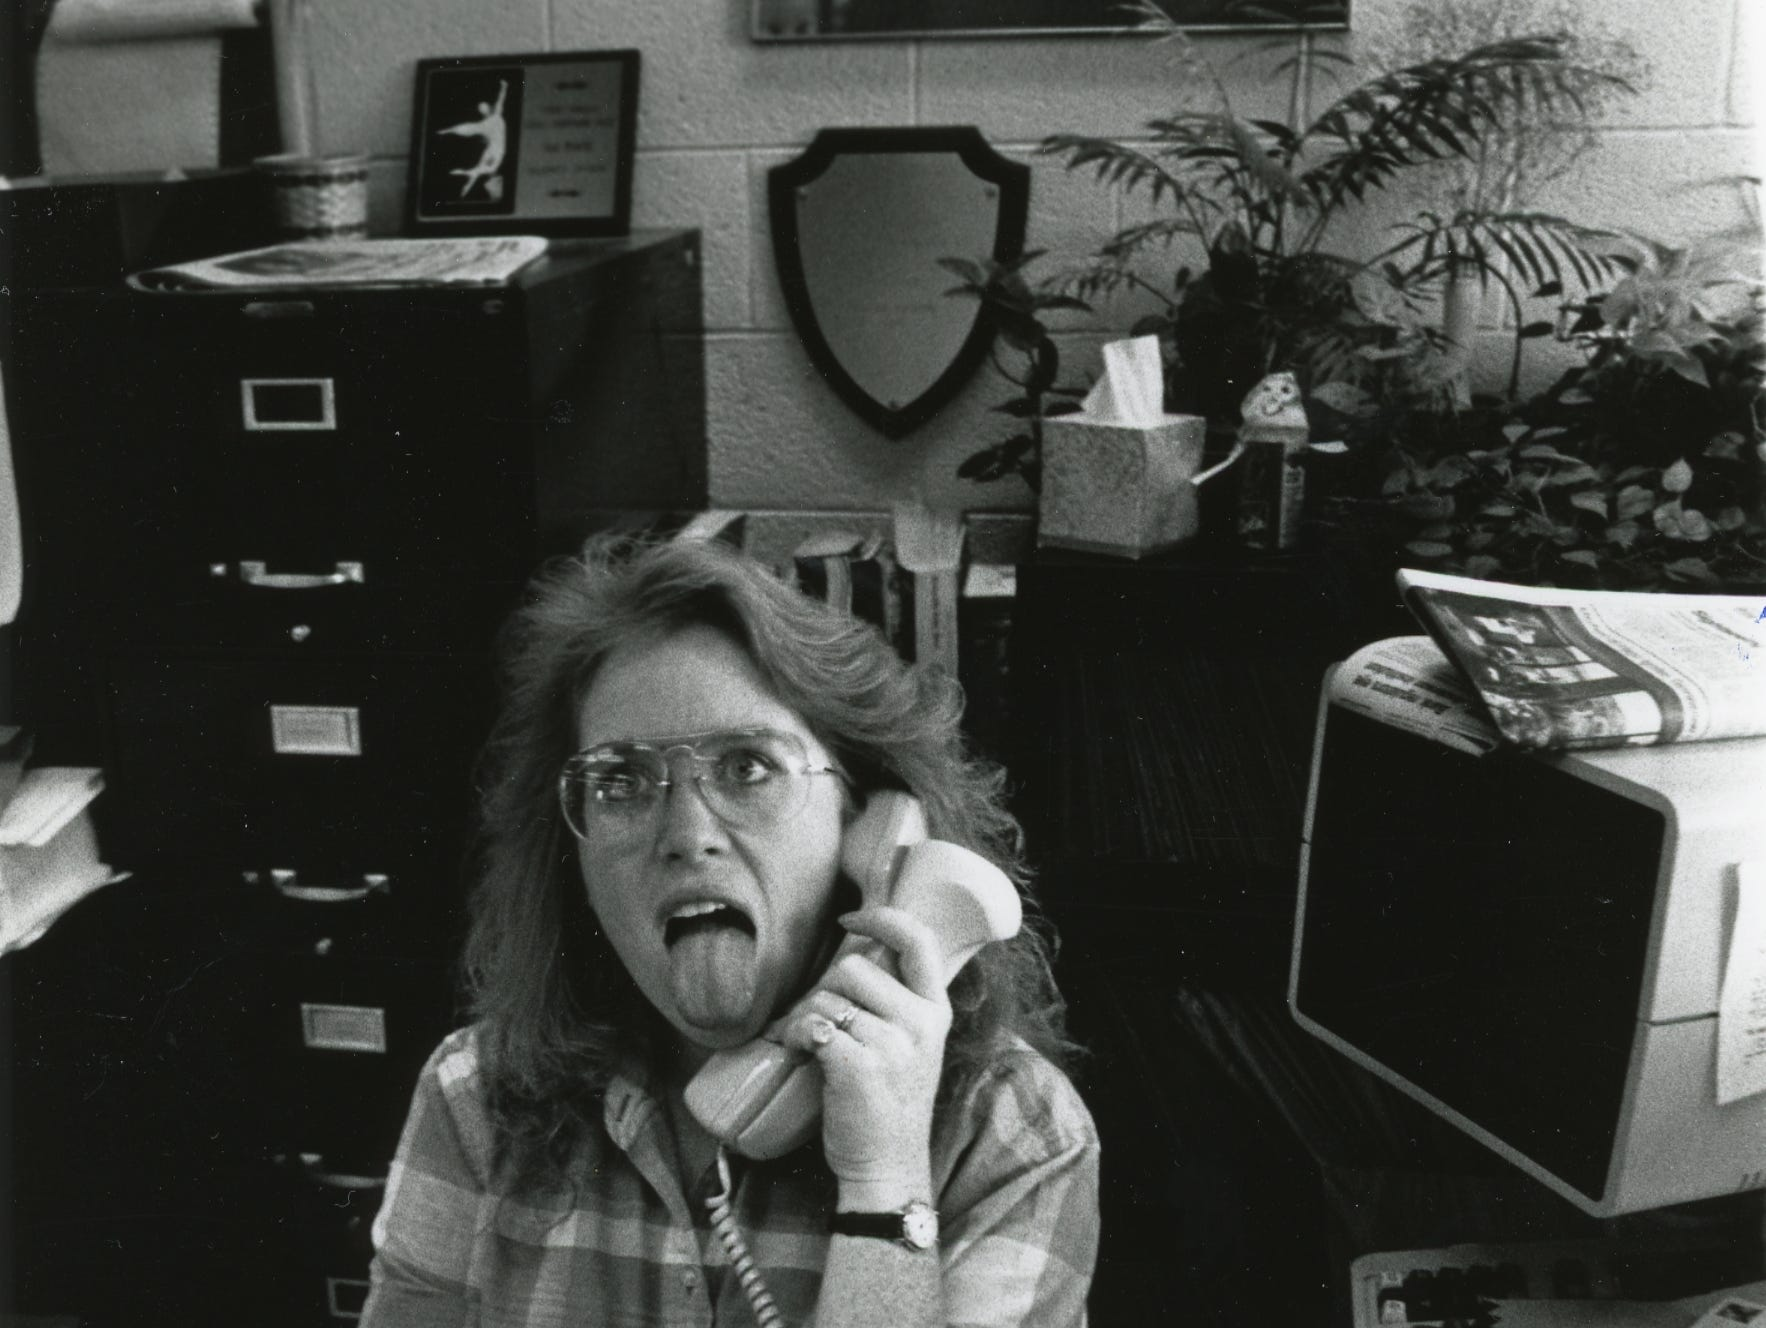 Donna Colburn, receptionist, in the mid 1980's.